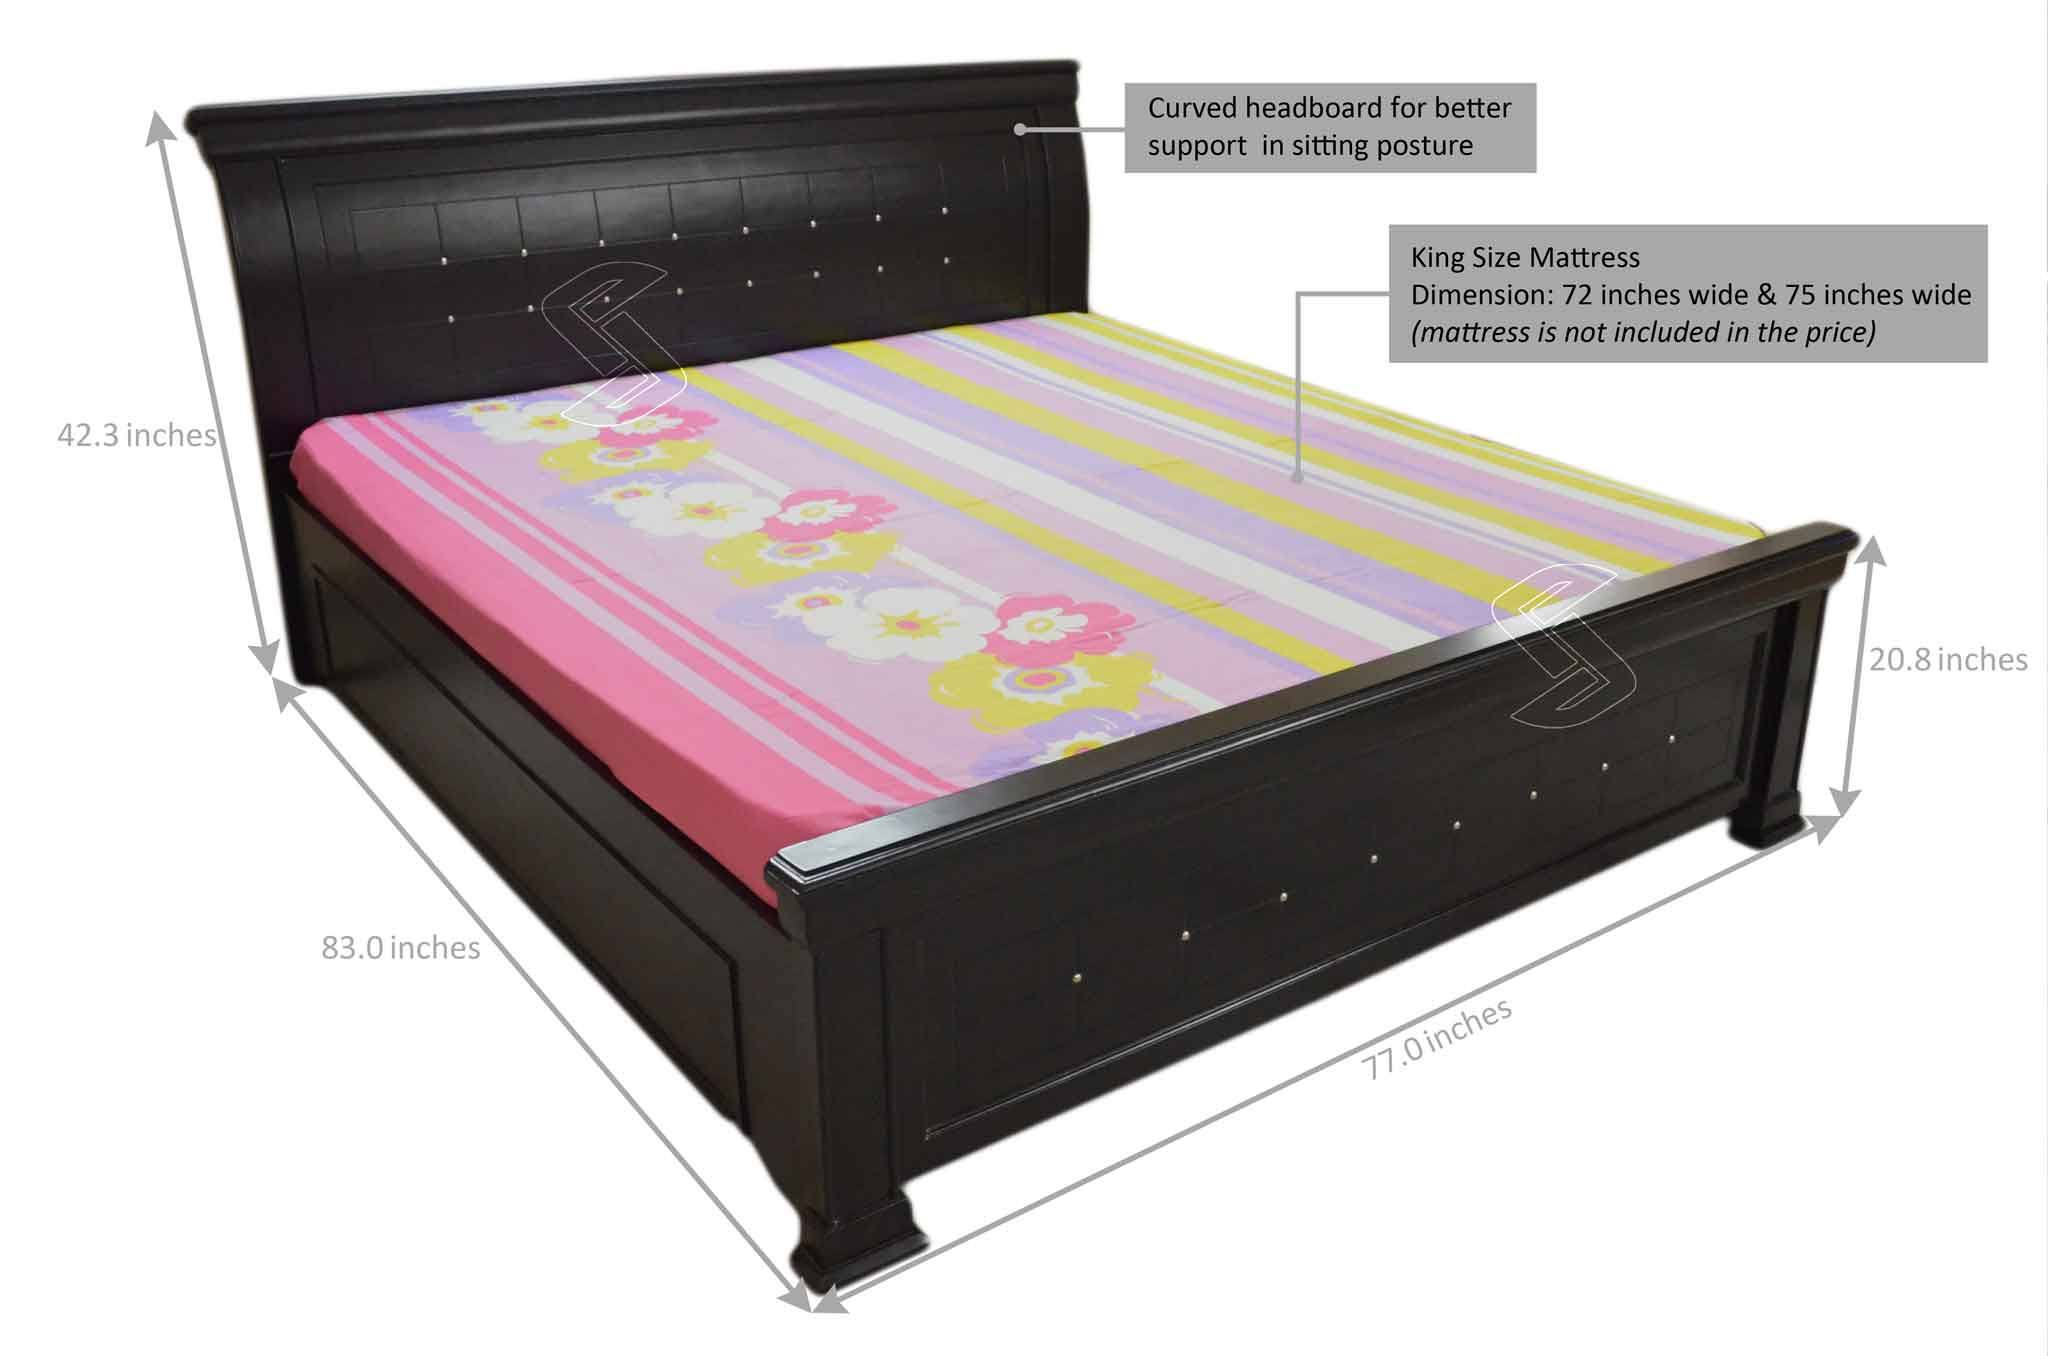 bed frame vevet diamante king size crushed headboard double georgio fabric velvet silver